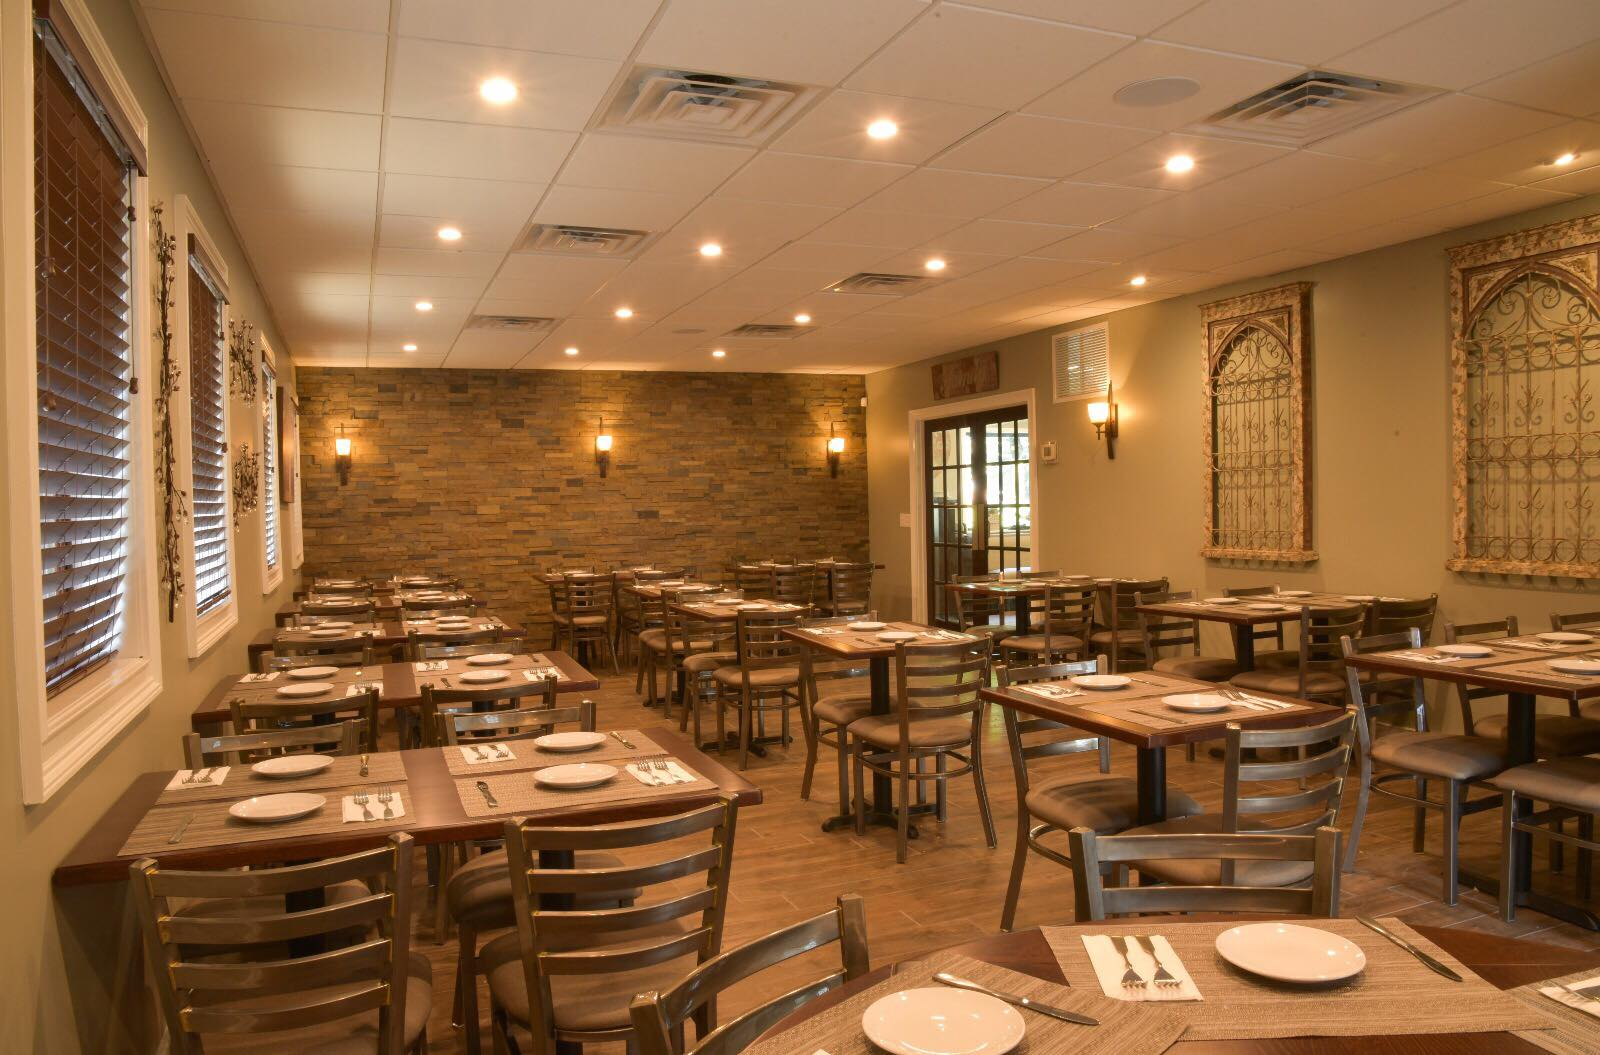 Interior of Amari's Pizzeria and Restaurant dining area with wooden tables and chairs with place settings